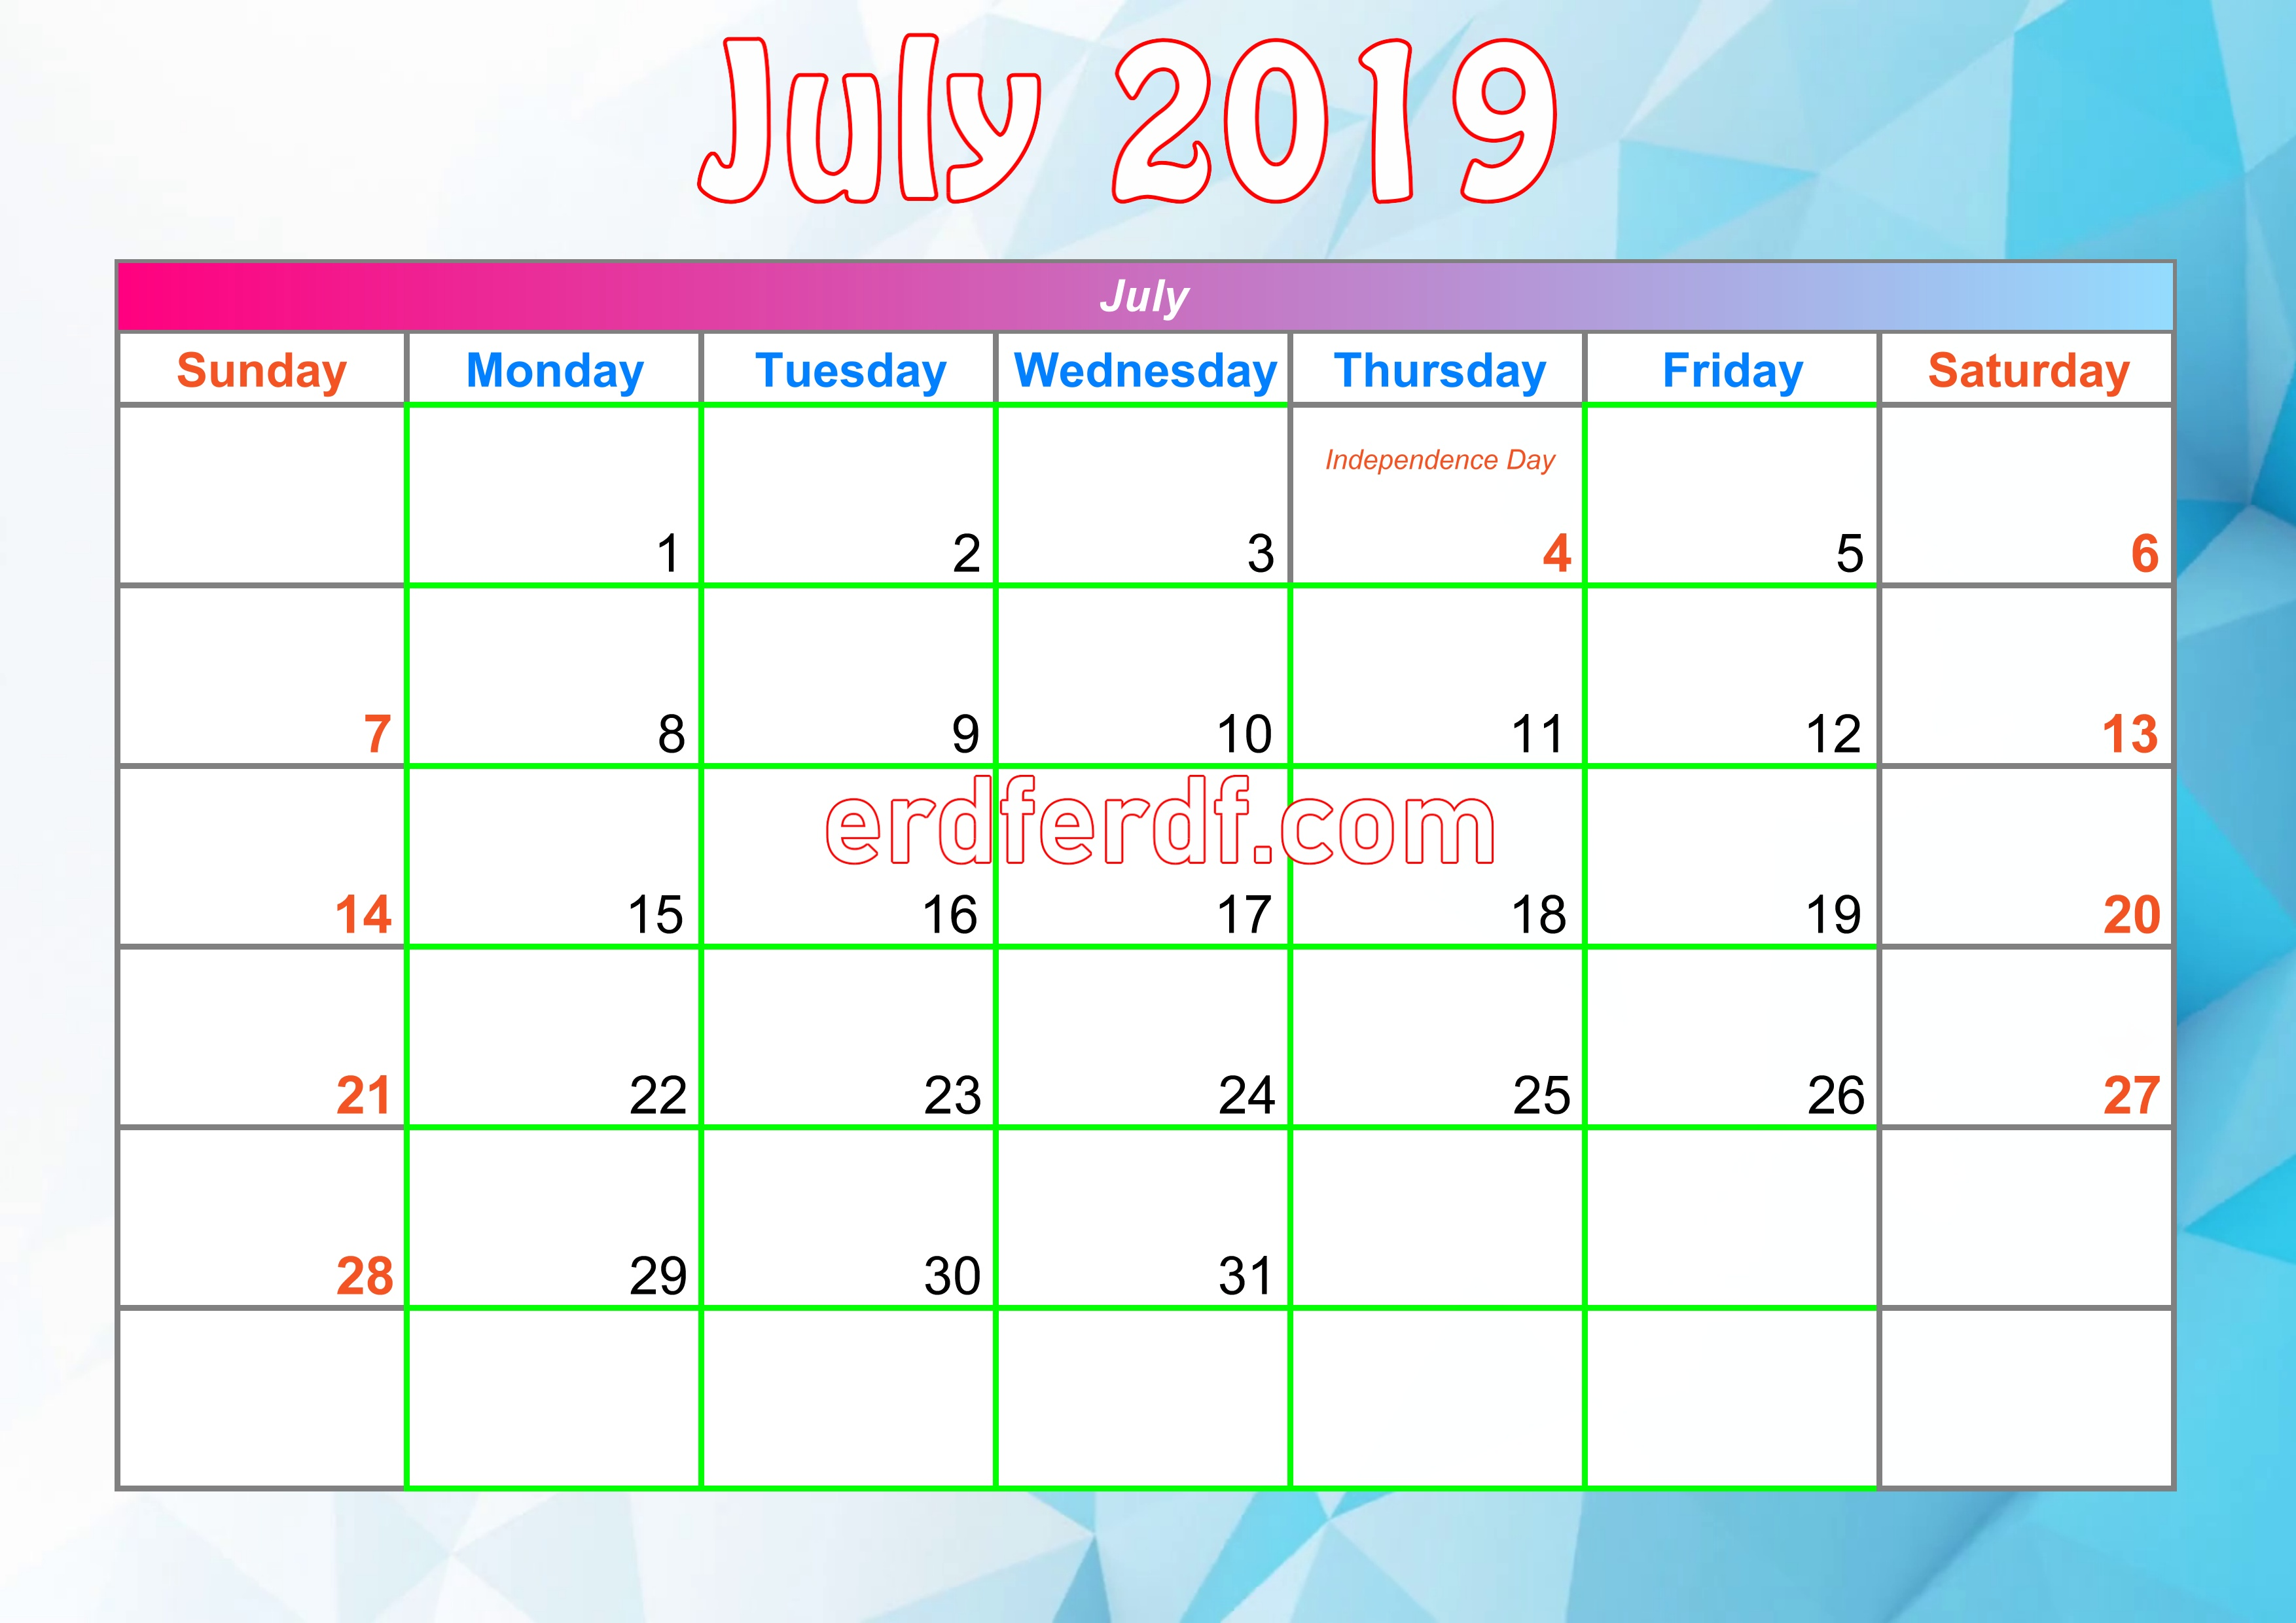 7July Printable Calendar For 2019 With Holidays